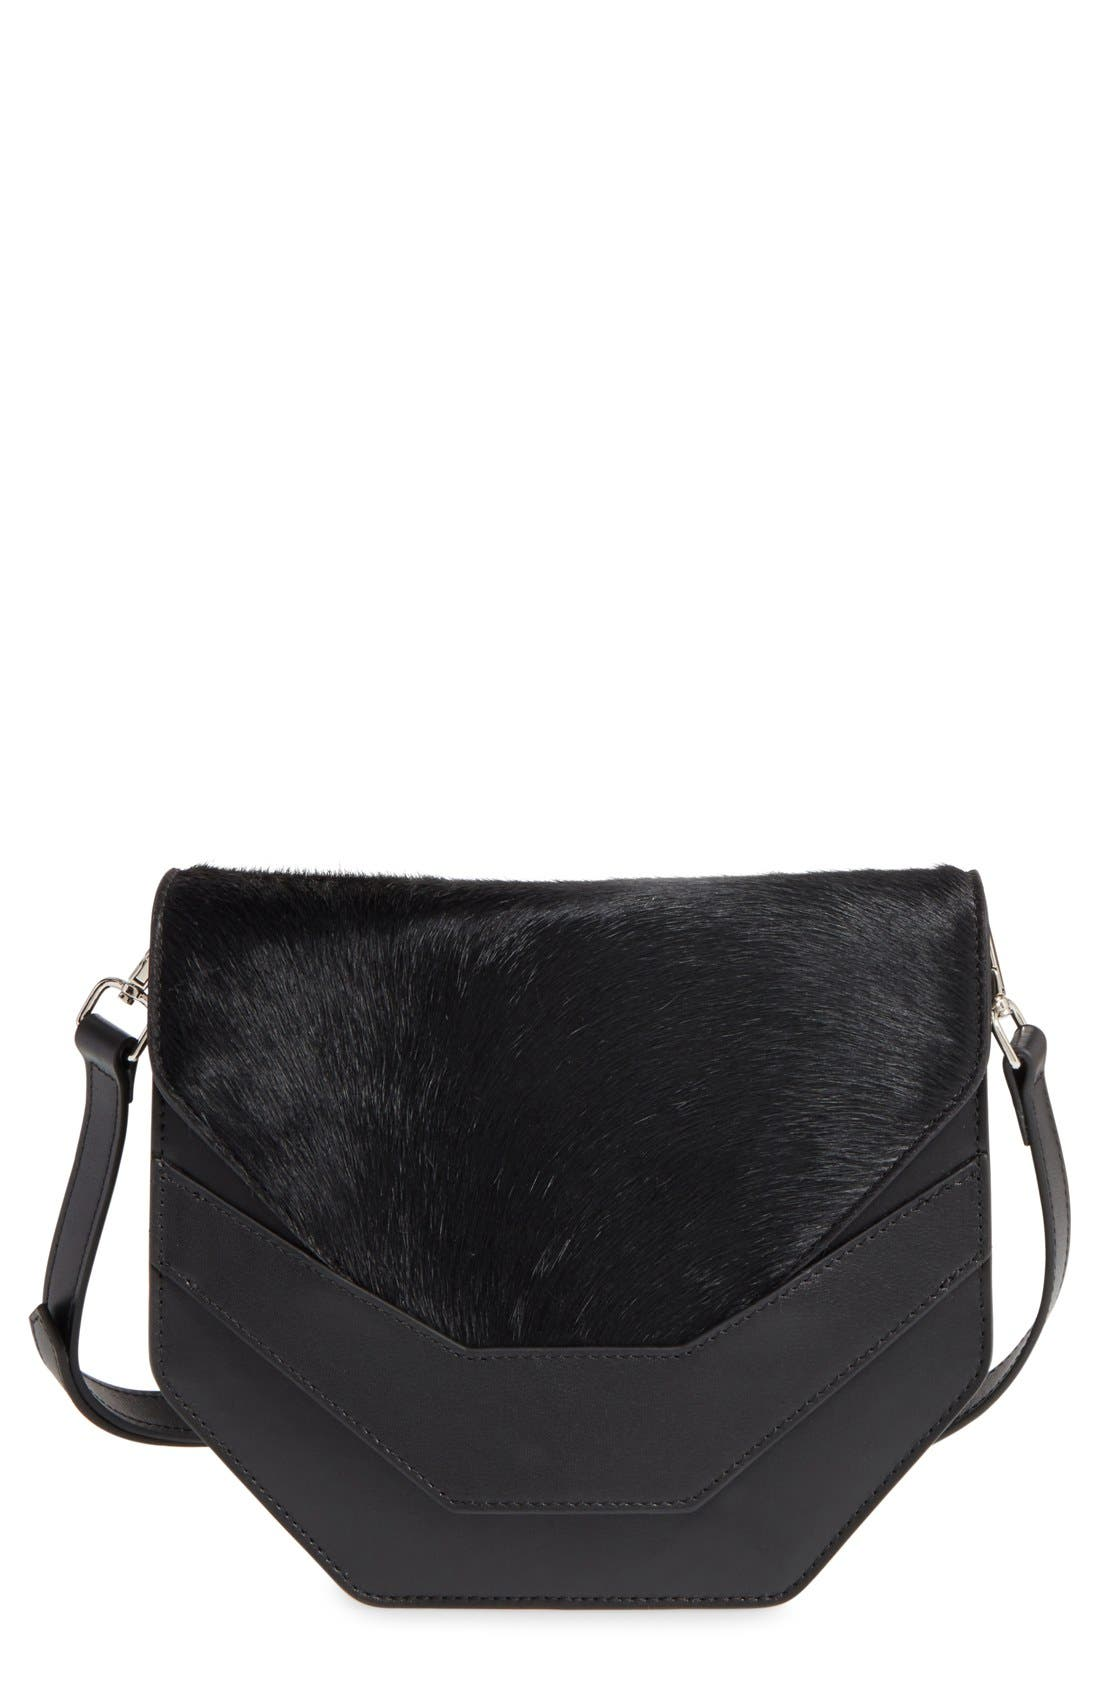 'The Eclipse' Crossbody Bag,                             Main thumbnail 1, color,                             001